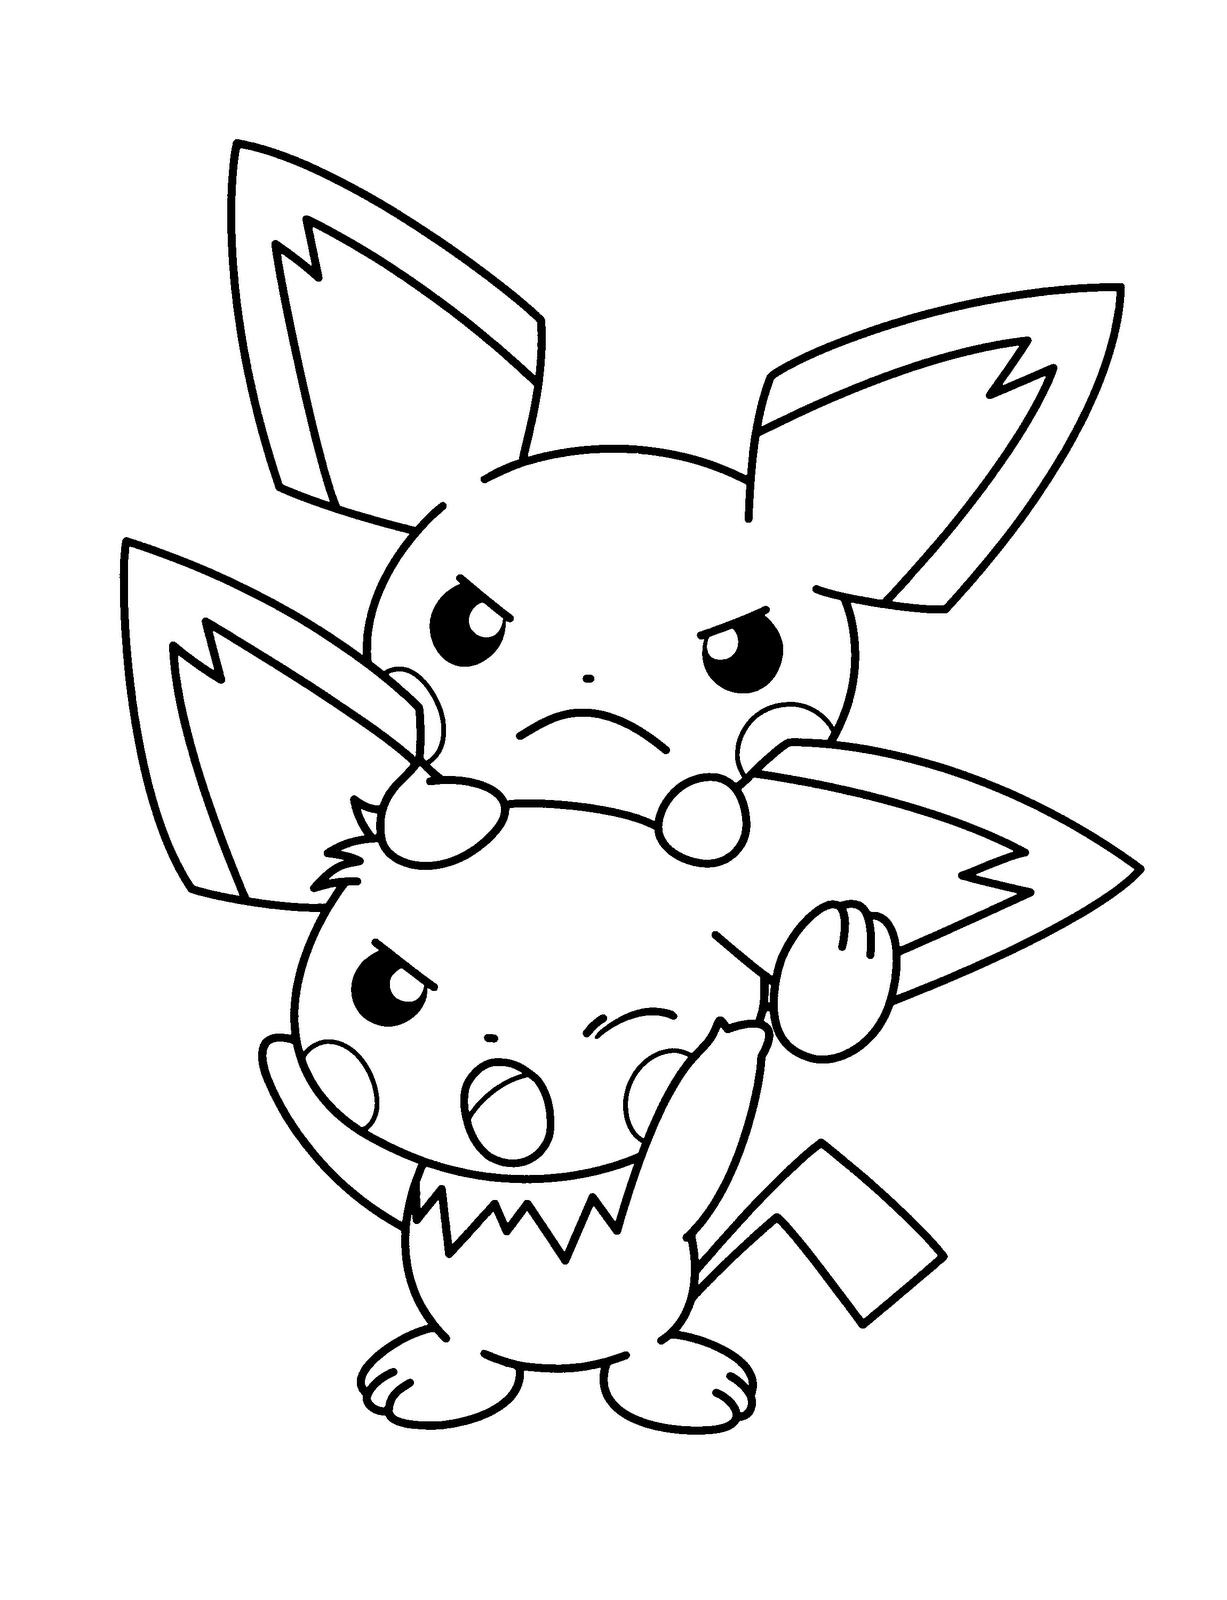 colering | Pokemon Coloring Pages "|1227|1600|?|d832d93e4b87d7f99371debe2eb710f9|False|UNLIKELY|0.3253713548183441